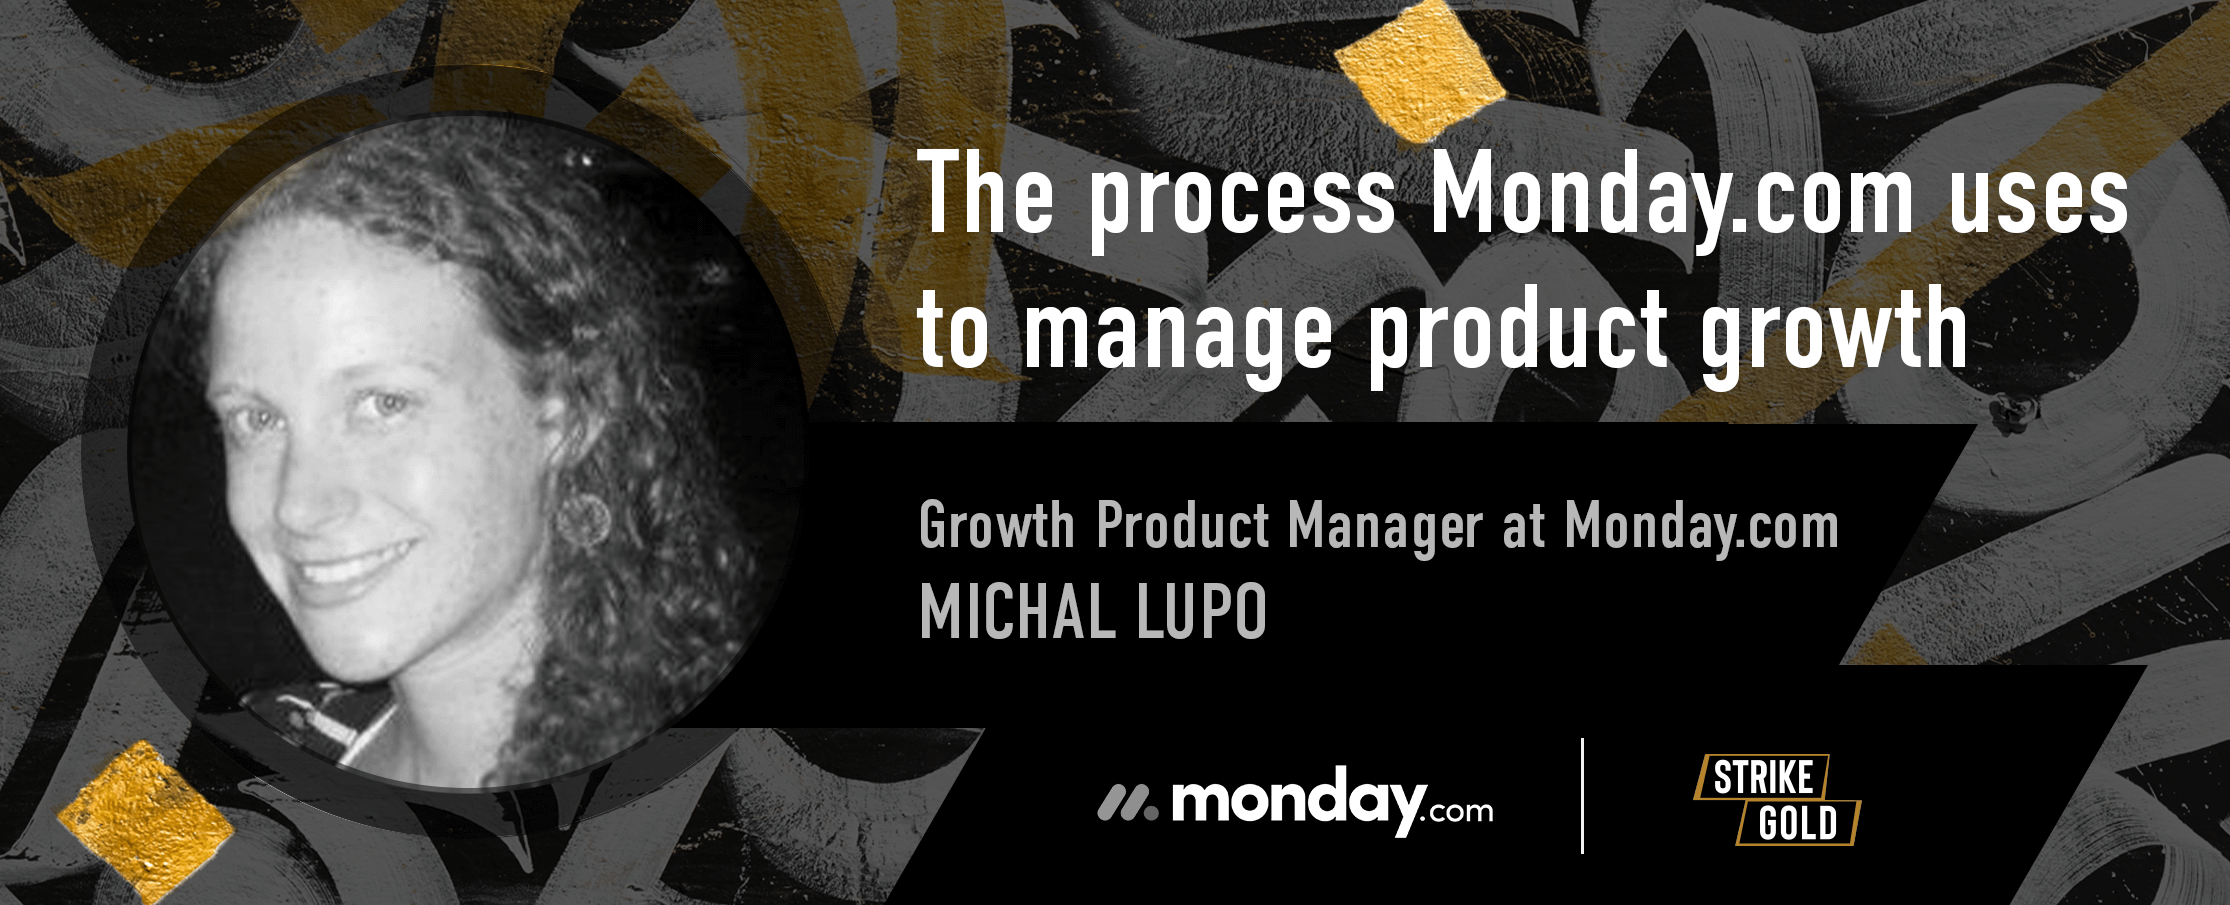 Michal Lupo - monday.com